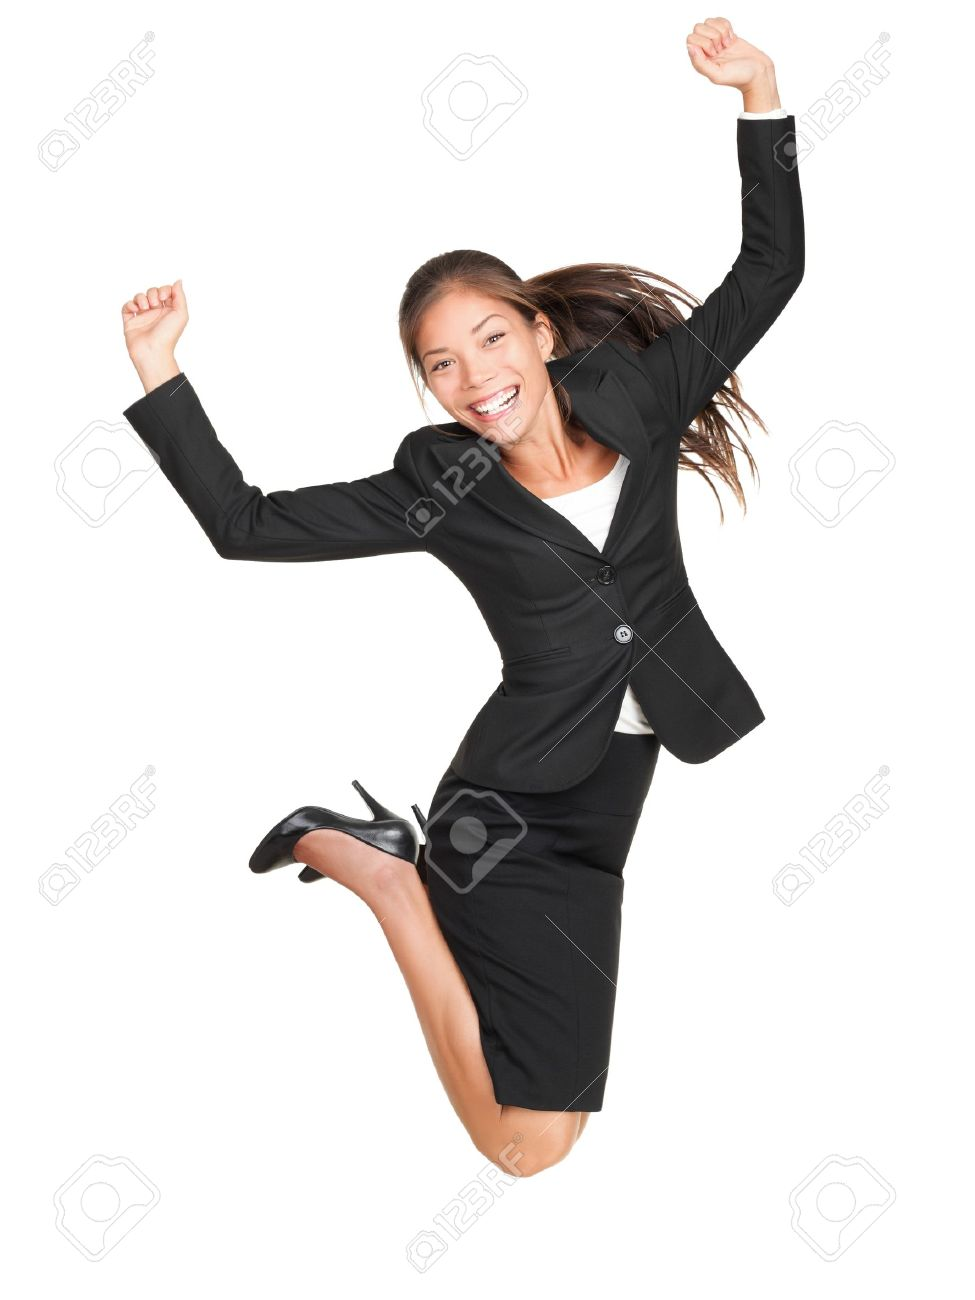 jumping business w celebrating successful businessw jumping business w celebrating successful businessw in suit jumping joyful isolated on white background in